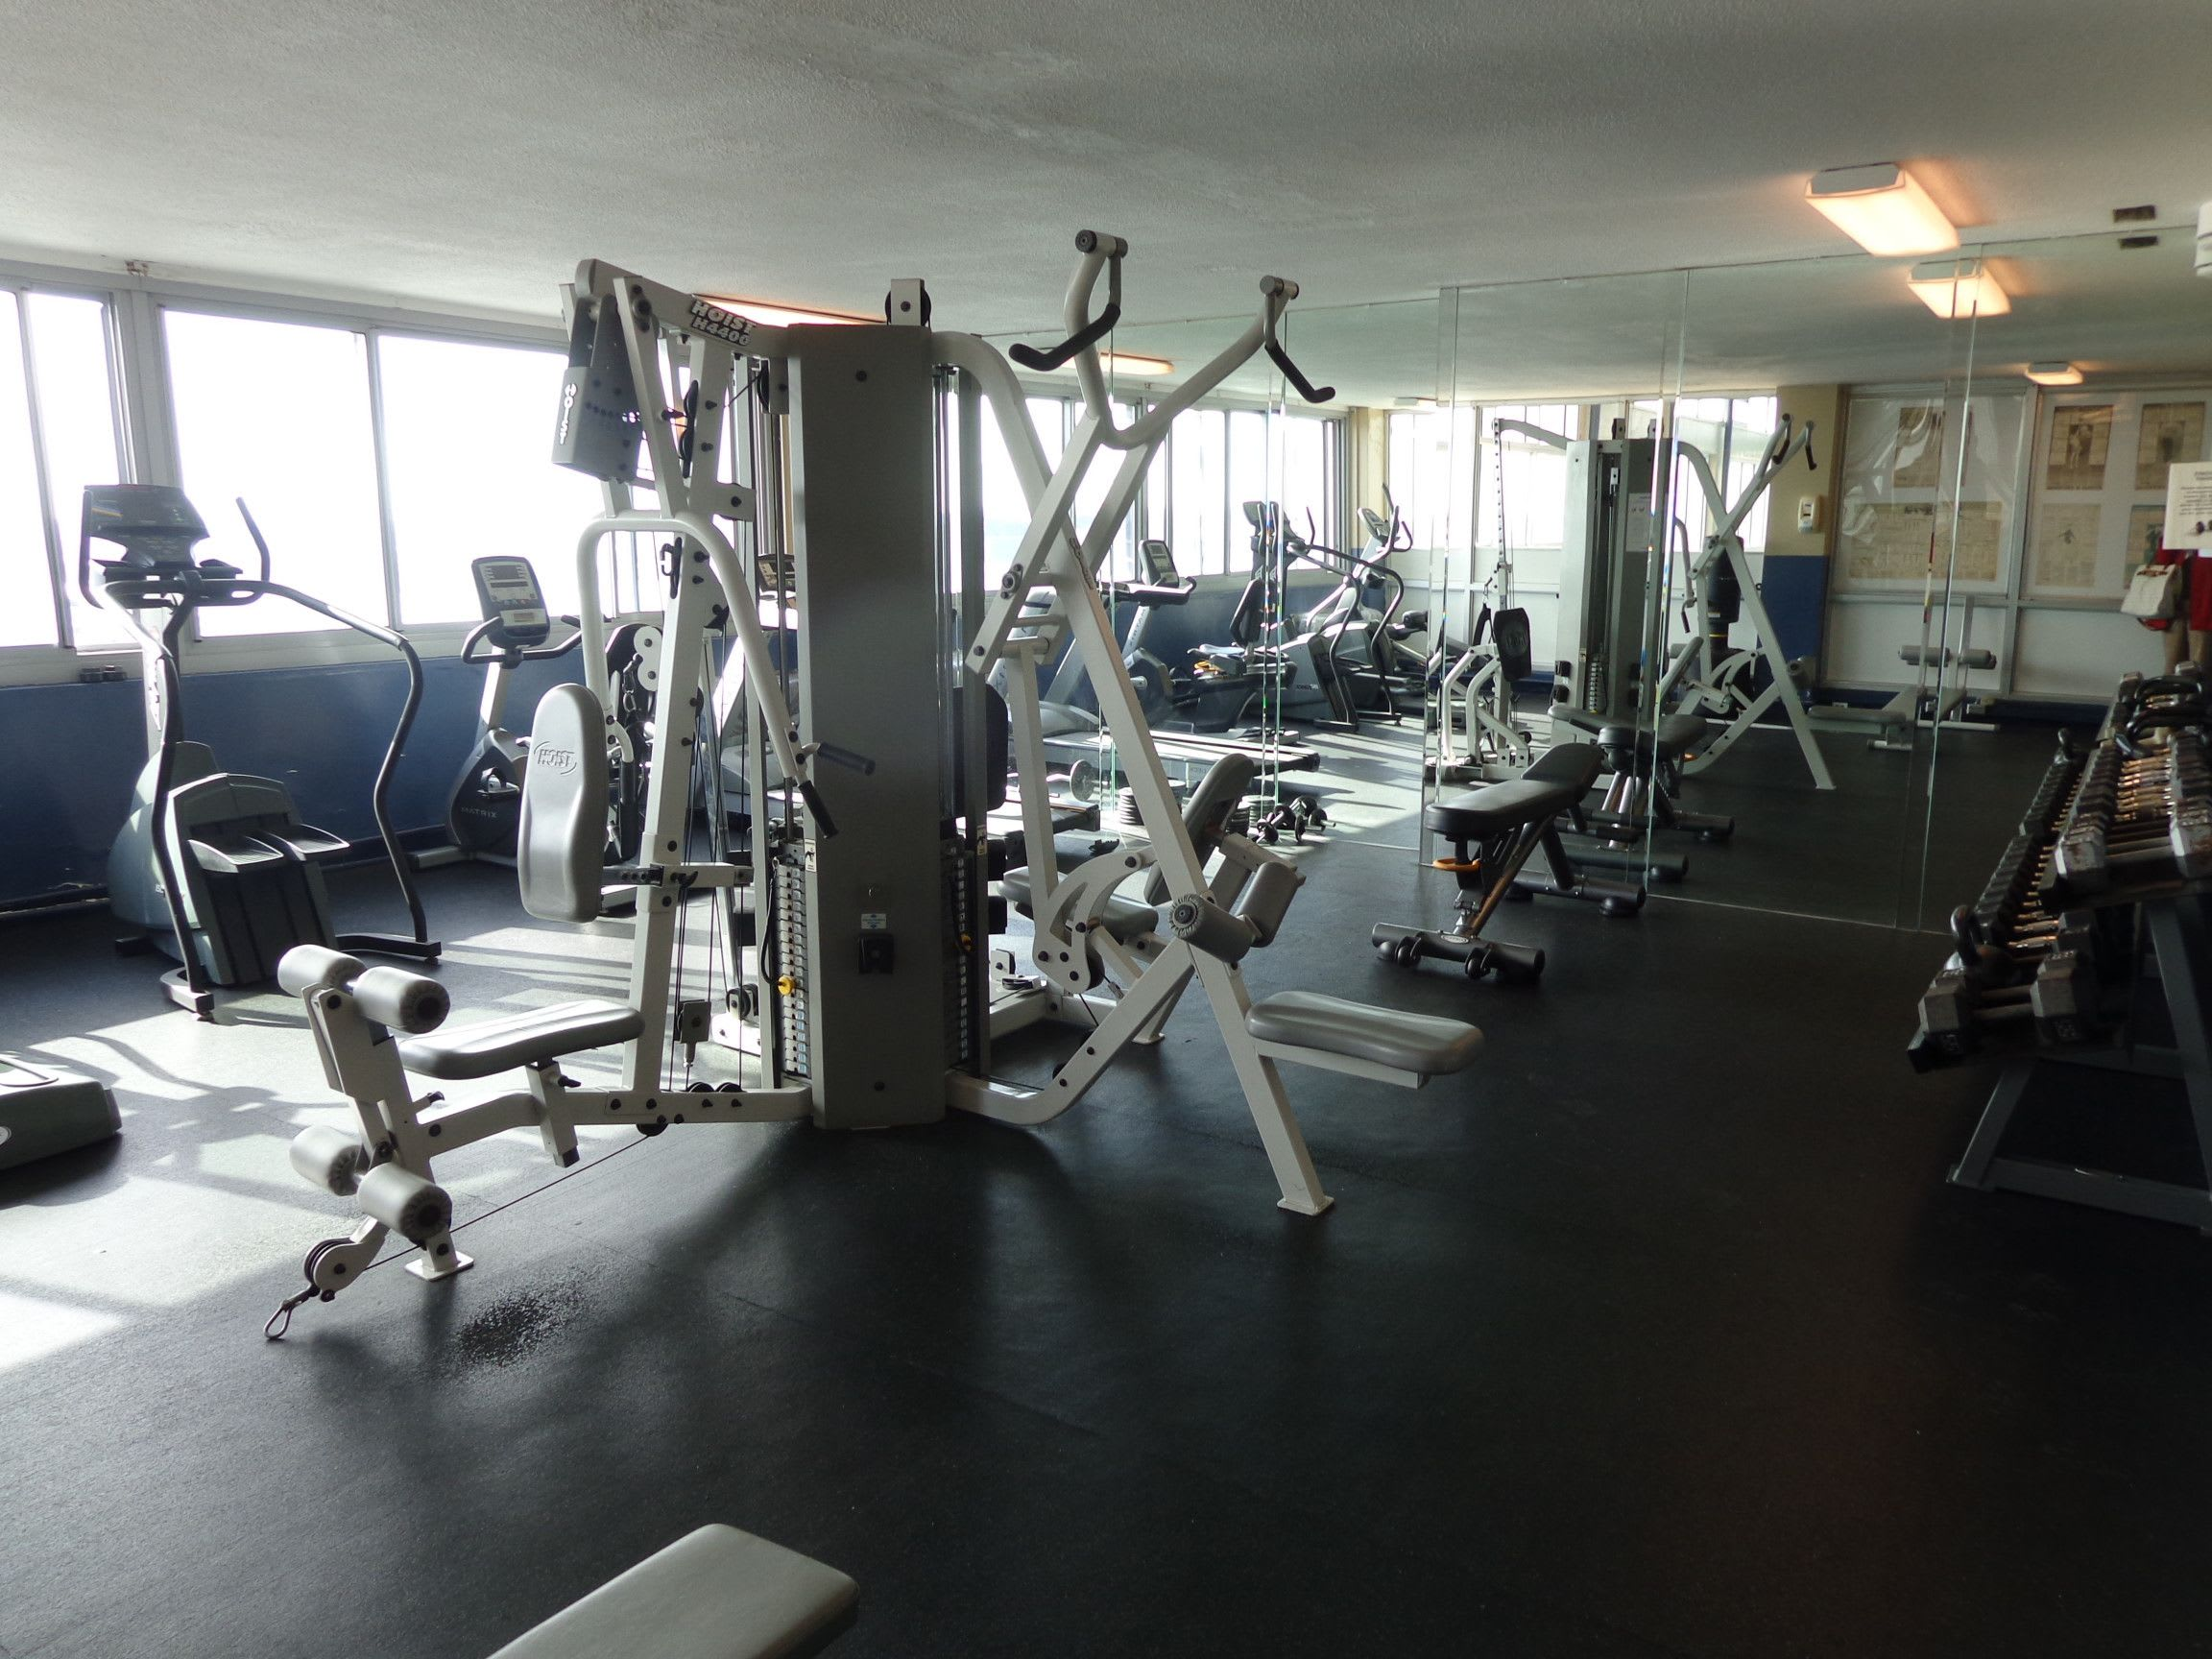 Fitness Center at Hague Towers in Norfolk, Virginia